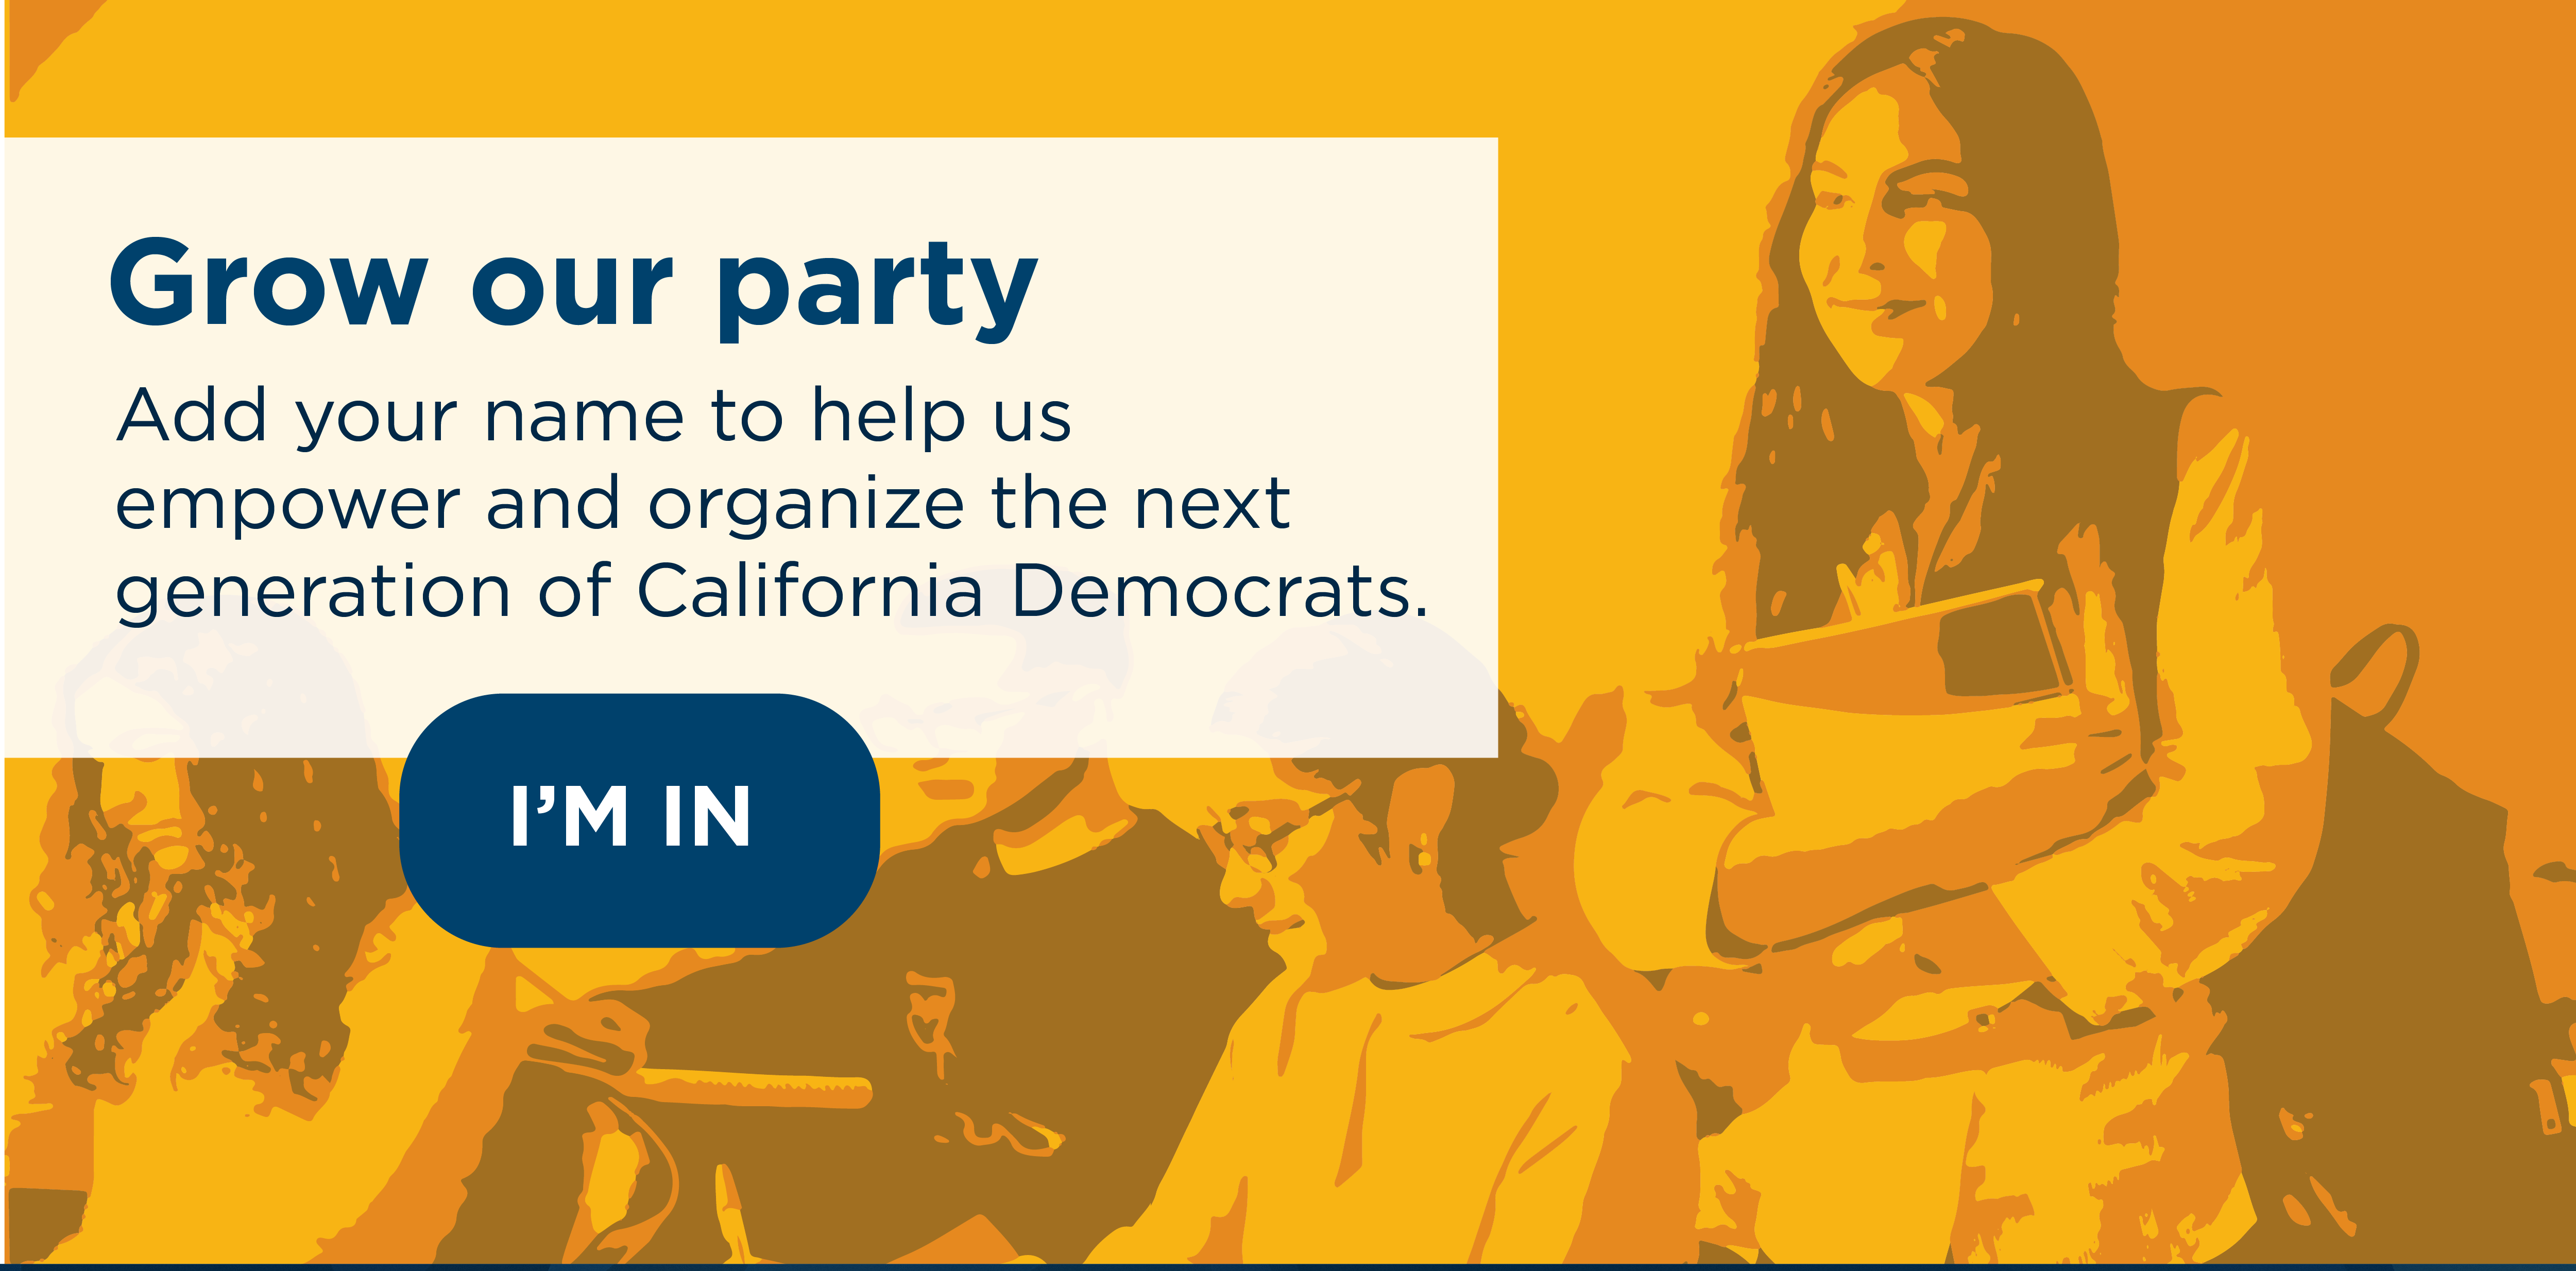 Grow our party: Add your name to help us empower and organize the next generation of California Democrats